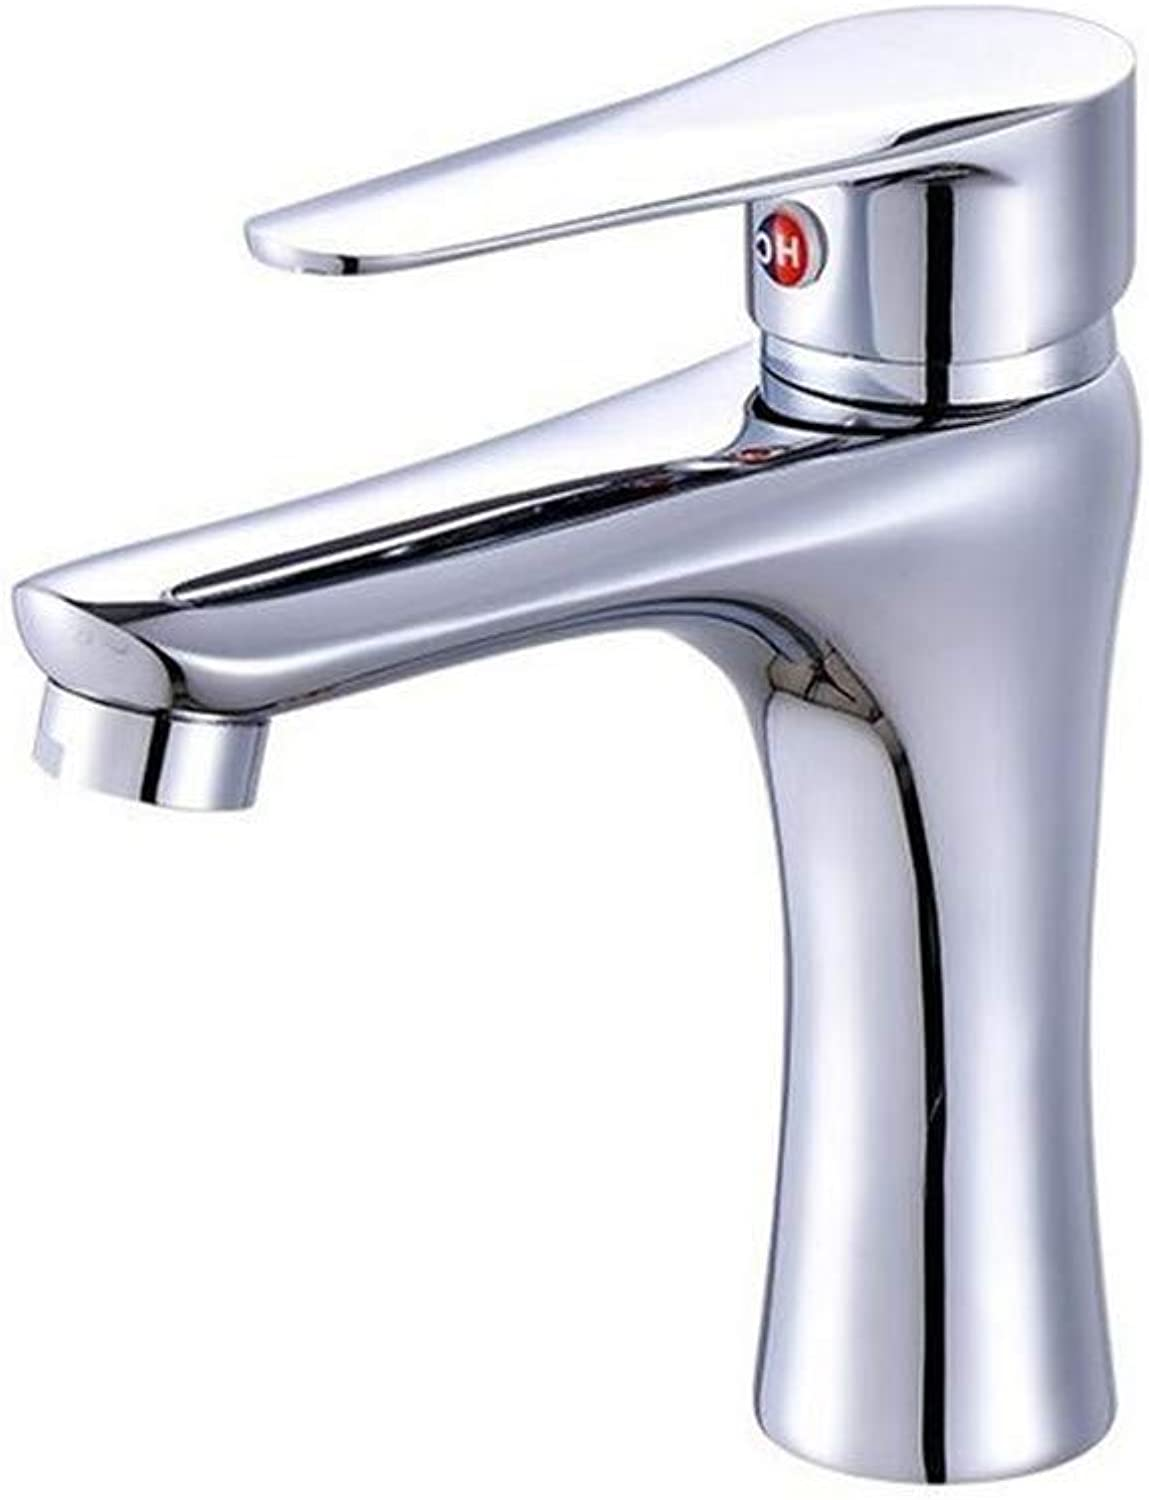 Basin Mixer Tap Single Single Hole Cold and Hot Water Mixing Faucet Dripping Single Hole Basin Faucet